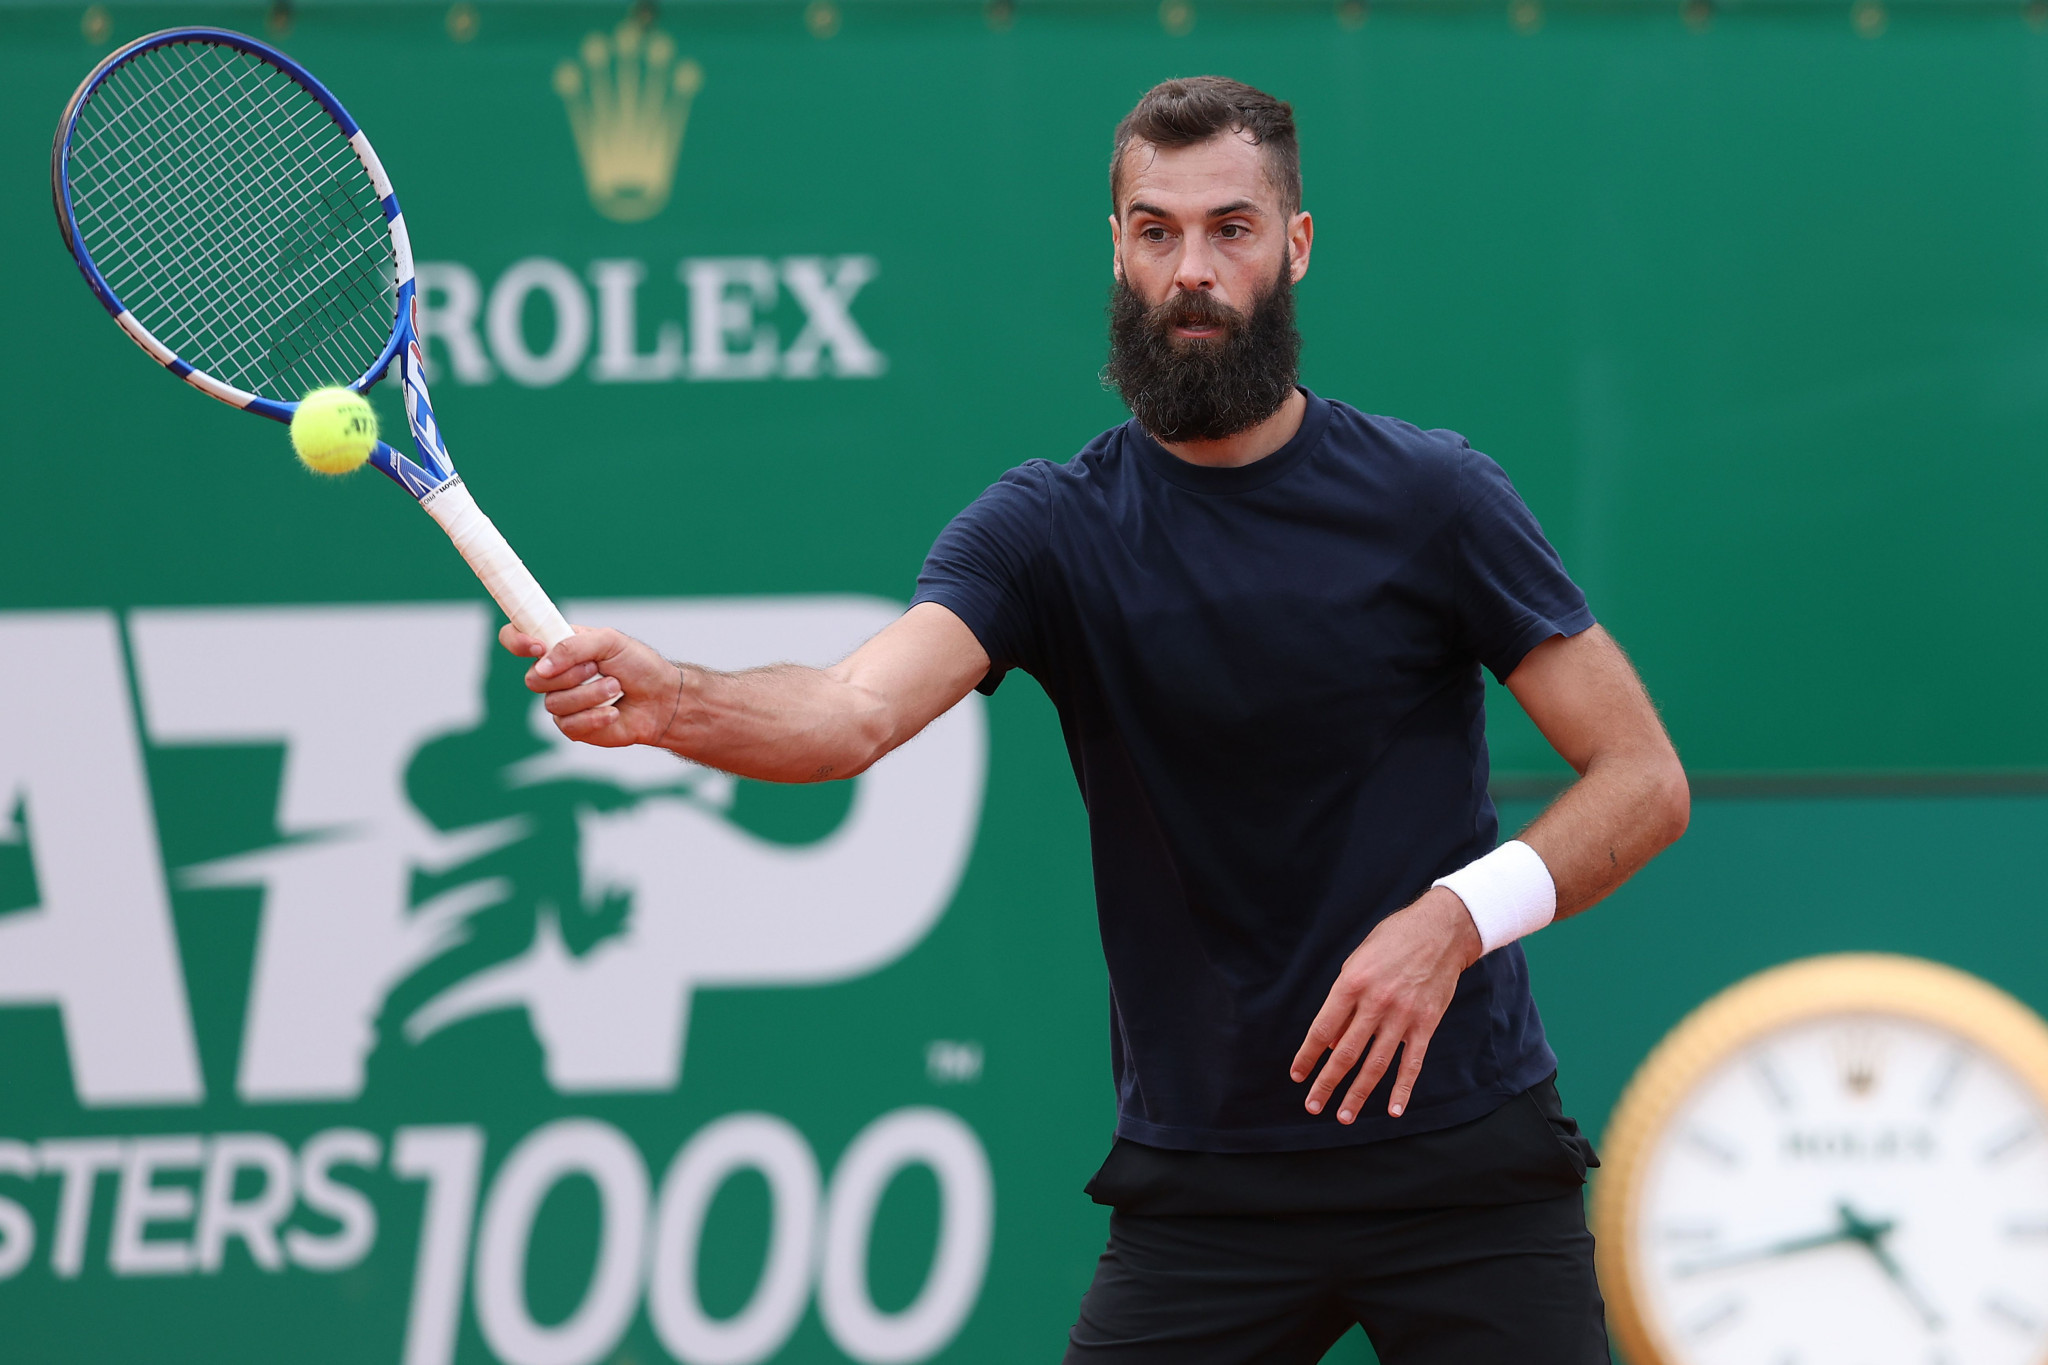 Benoît Paire suffered his latest defeat with the Frenchman comparing the court to a cemetery ©Getty Images